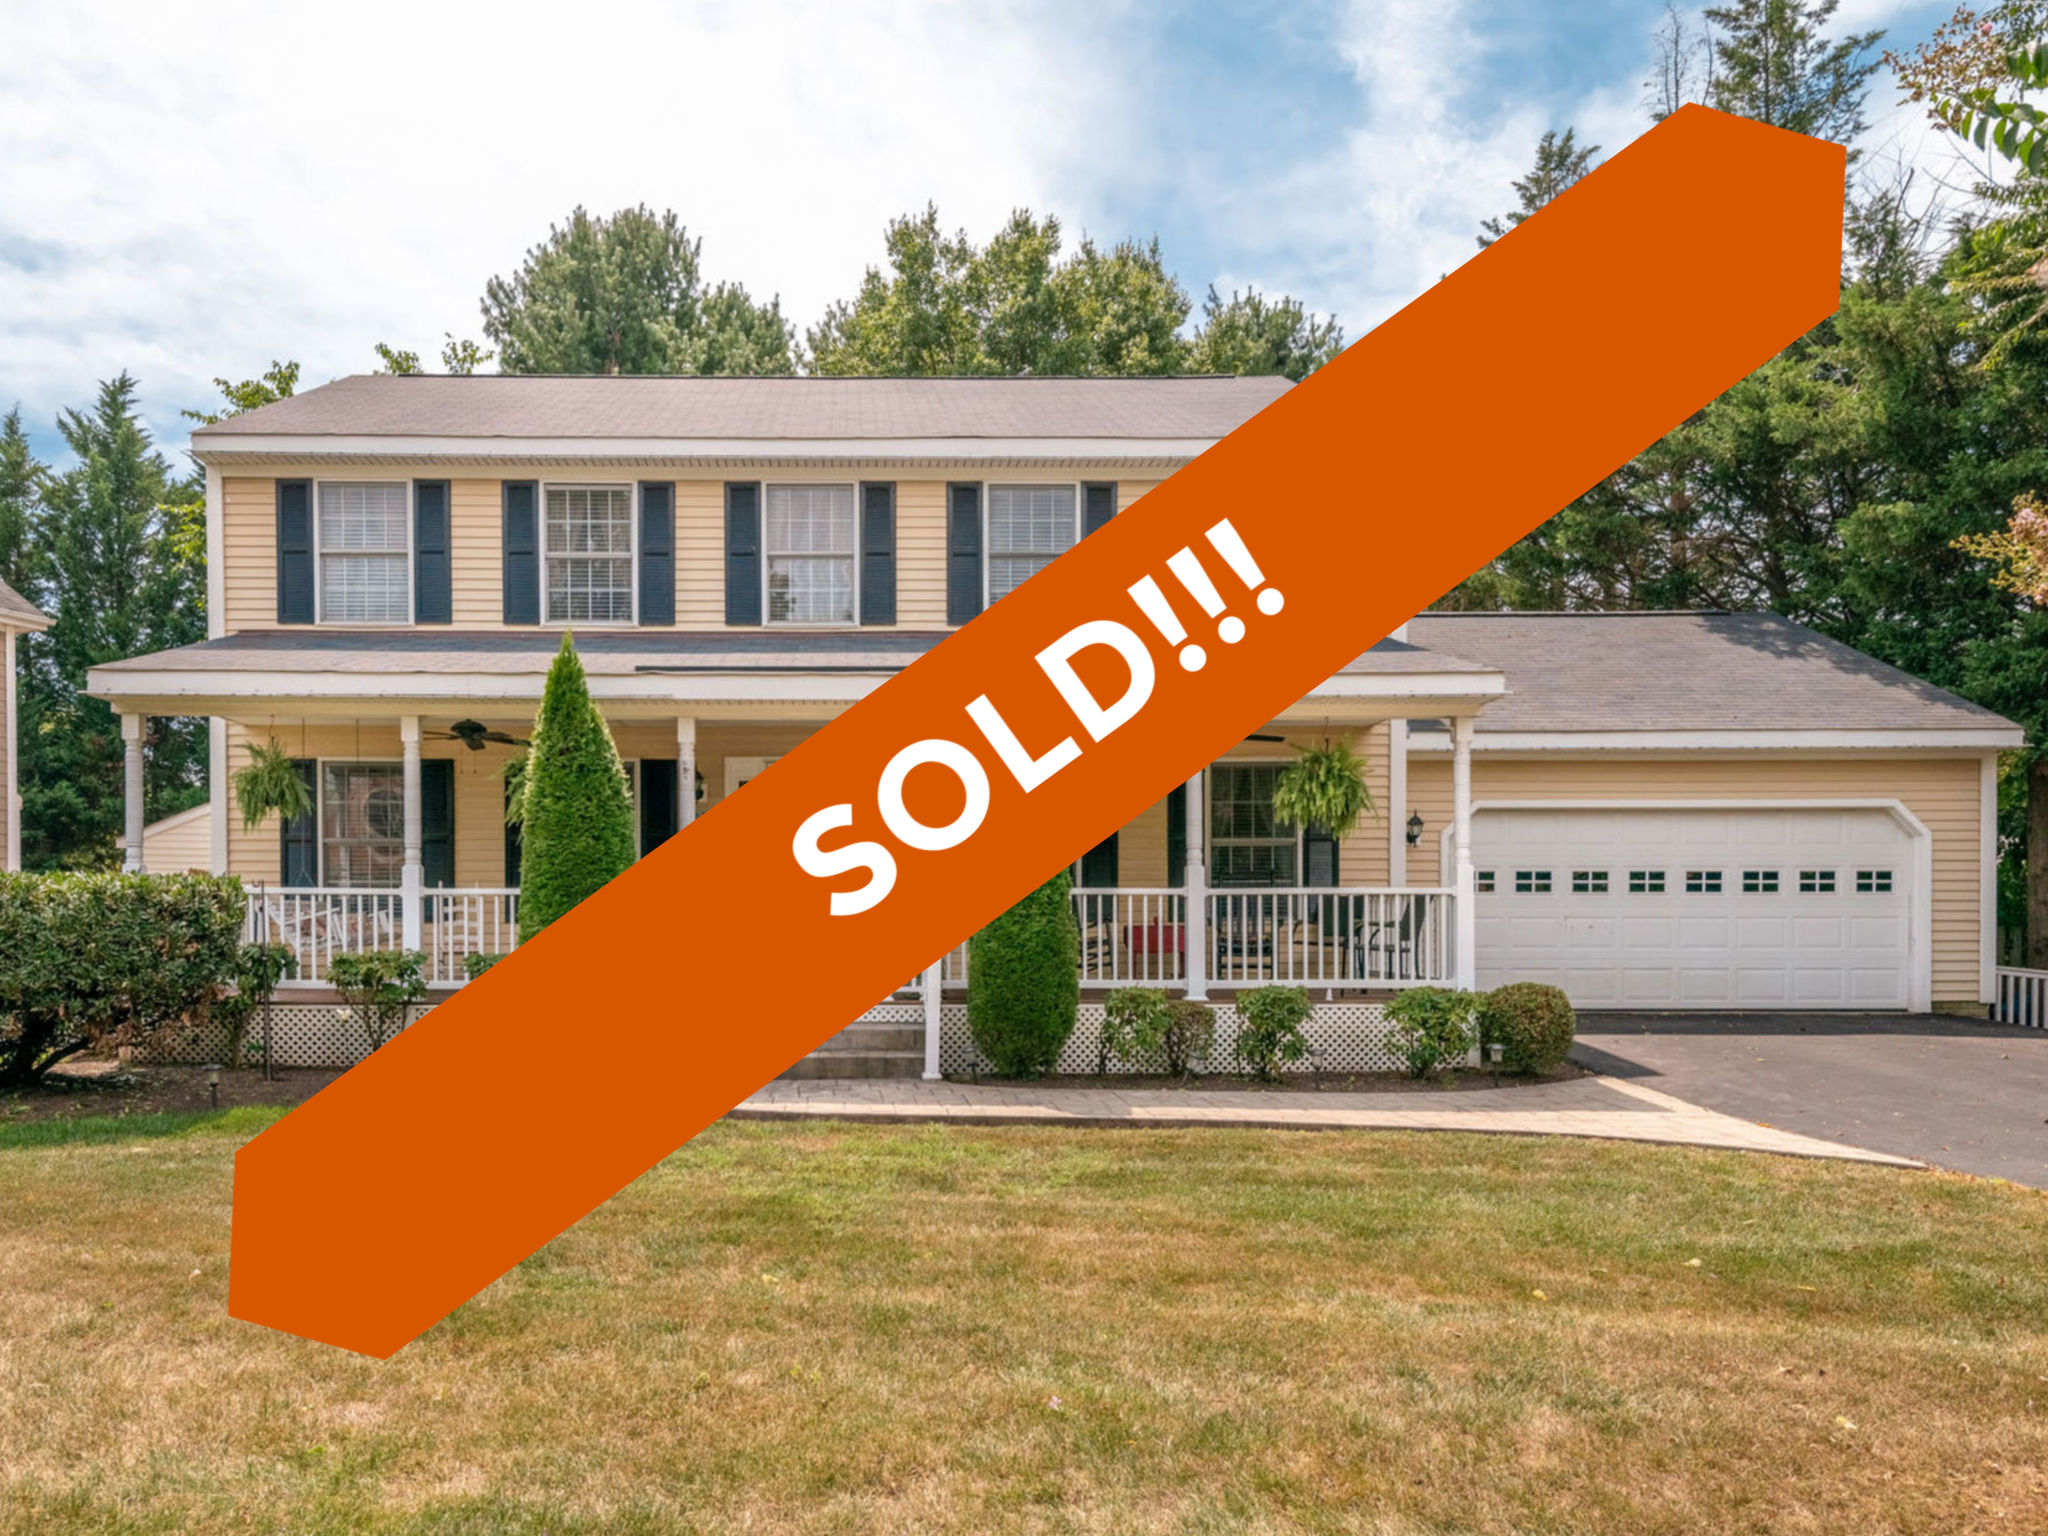 327 Old Waterford - Leesburg - SOLD